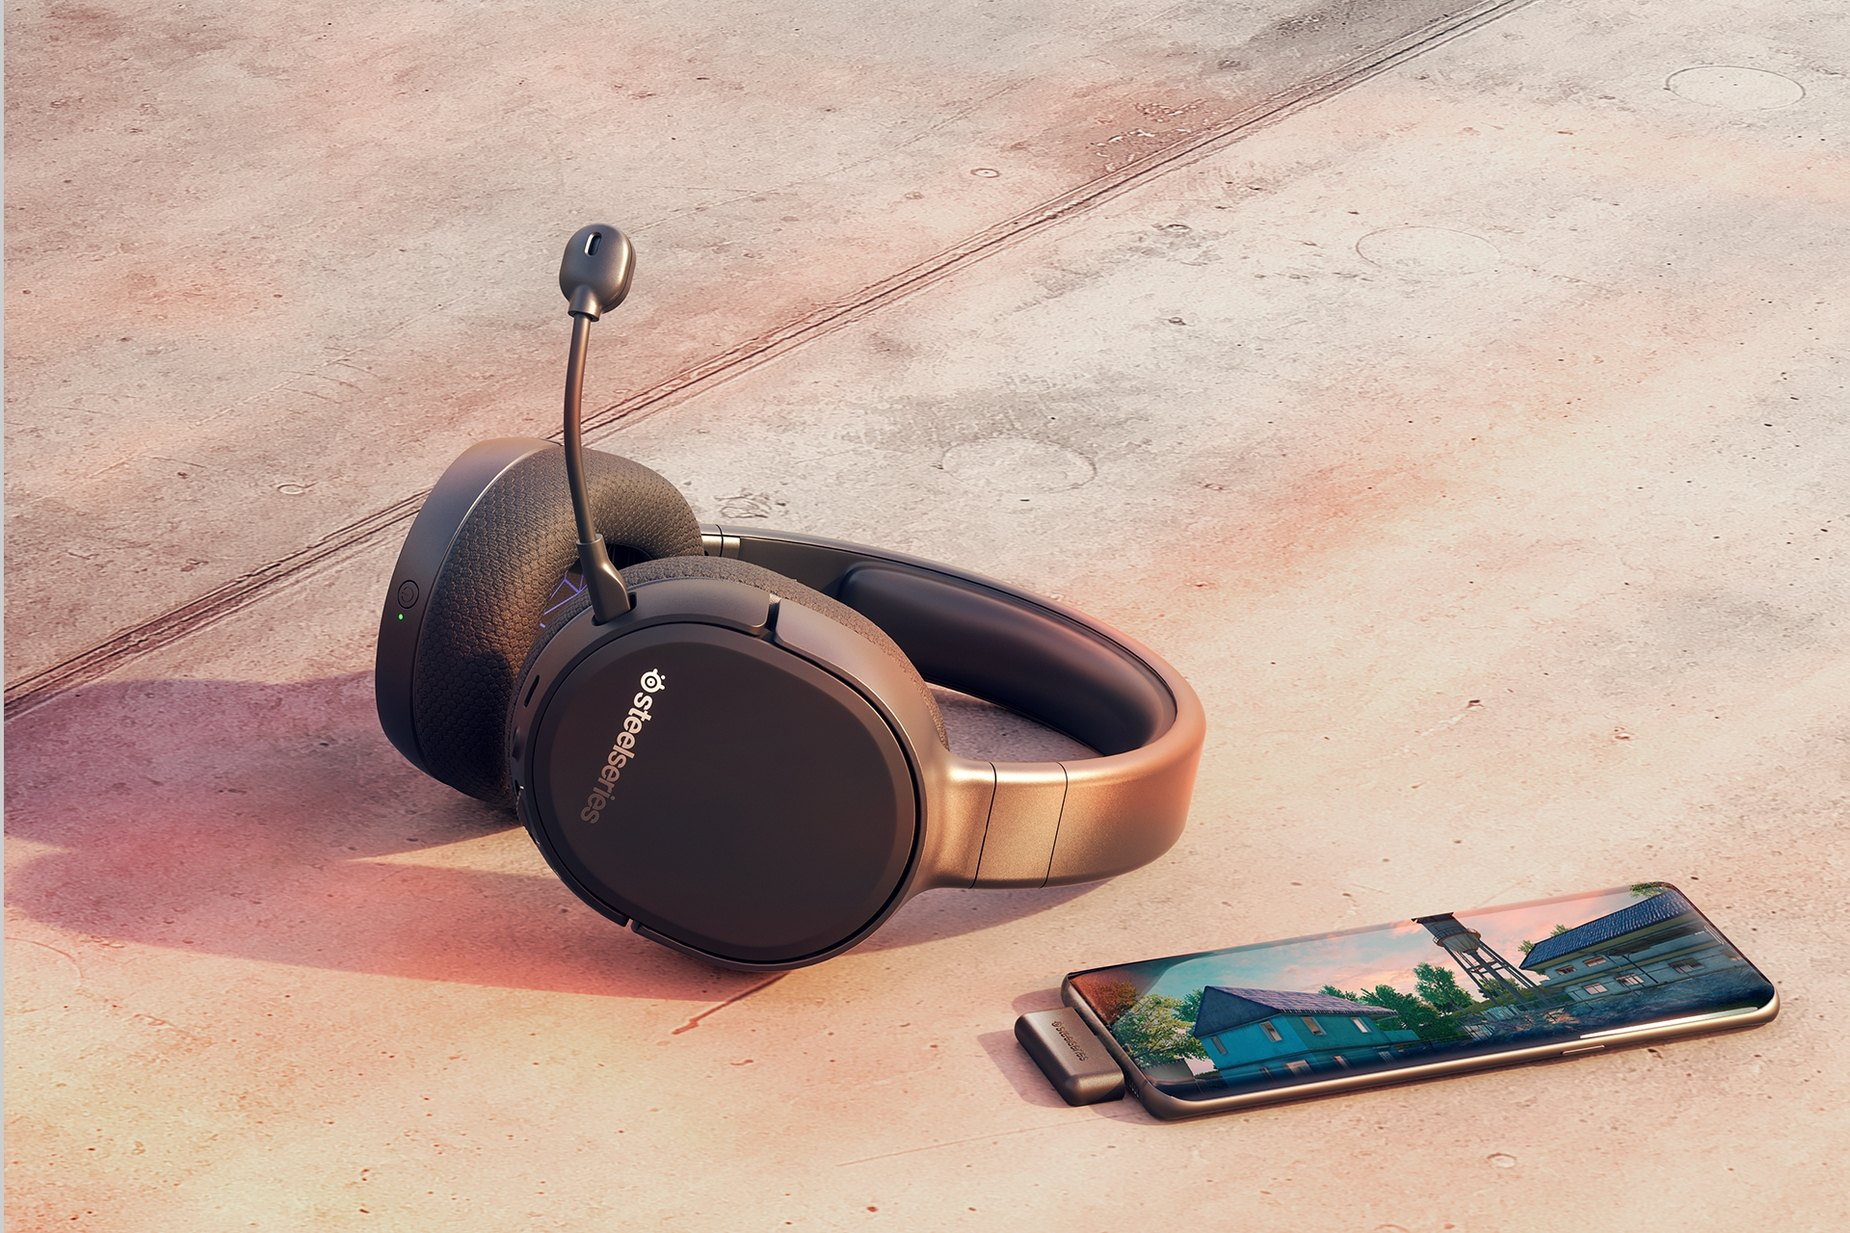 Arctis 1 Wireless for PS4 gaming headset on surface next to a mobile device, connected via the wireless dongle